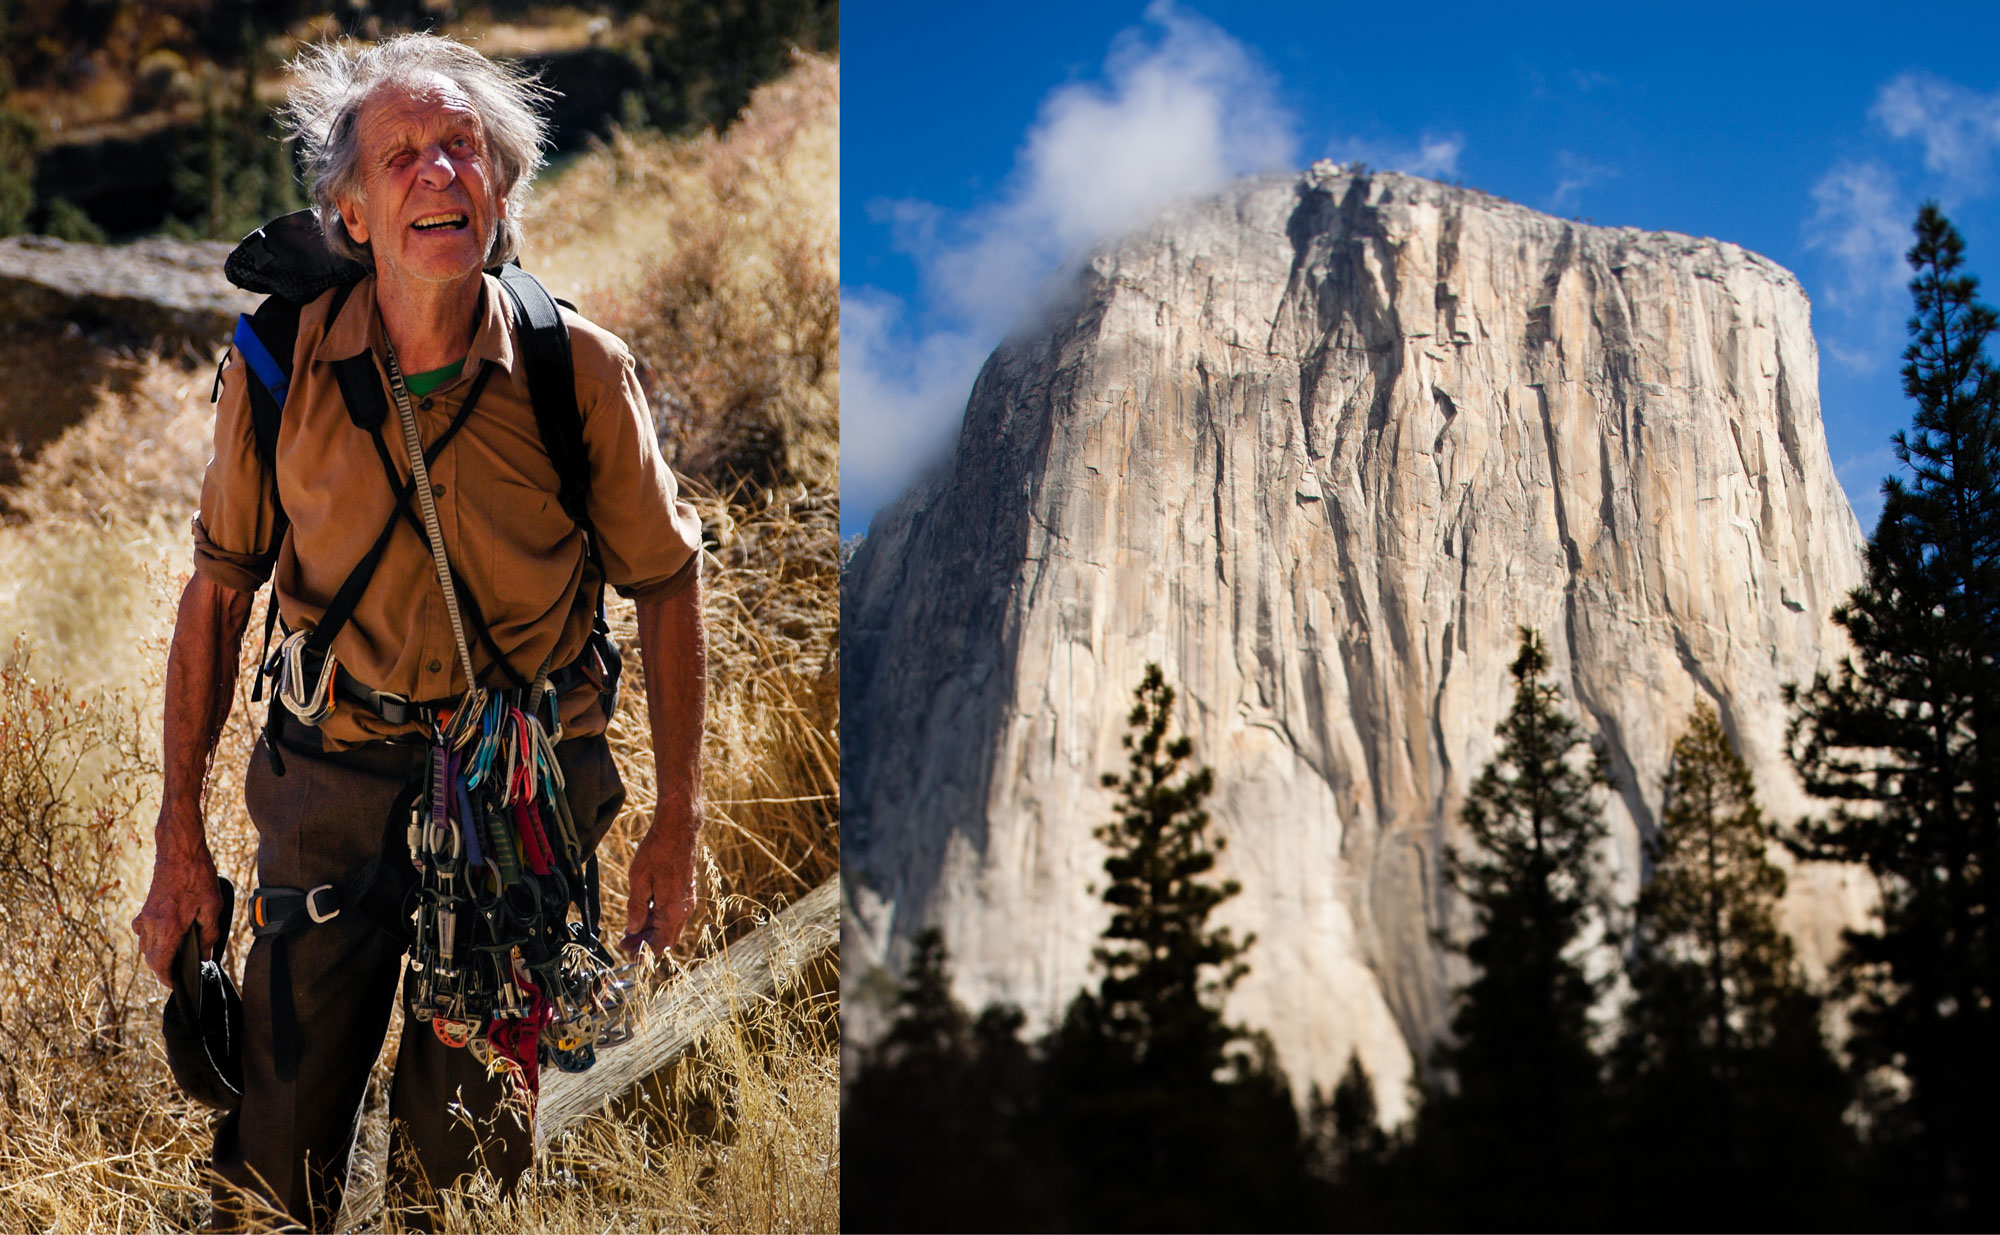 Climber Fred Beckey | Outdoor People Photographer